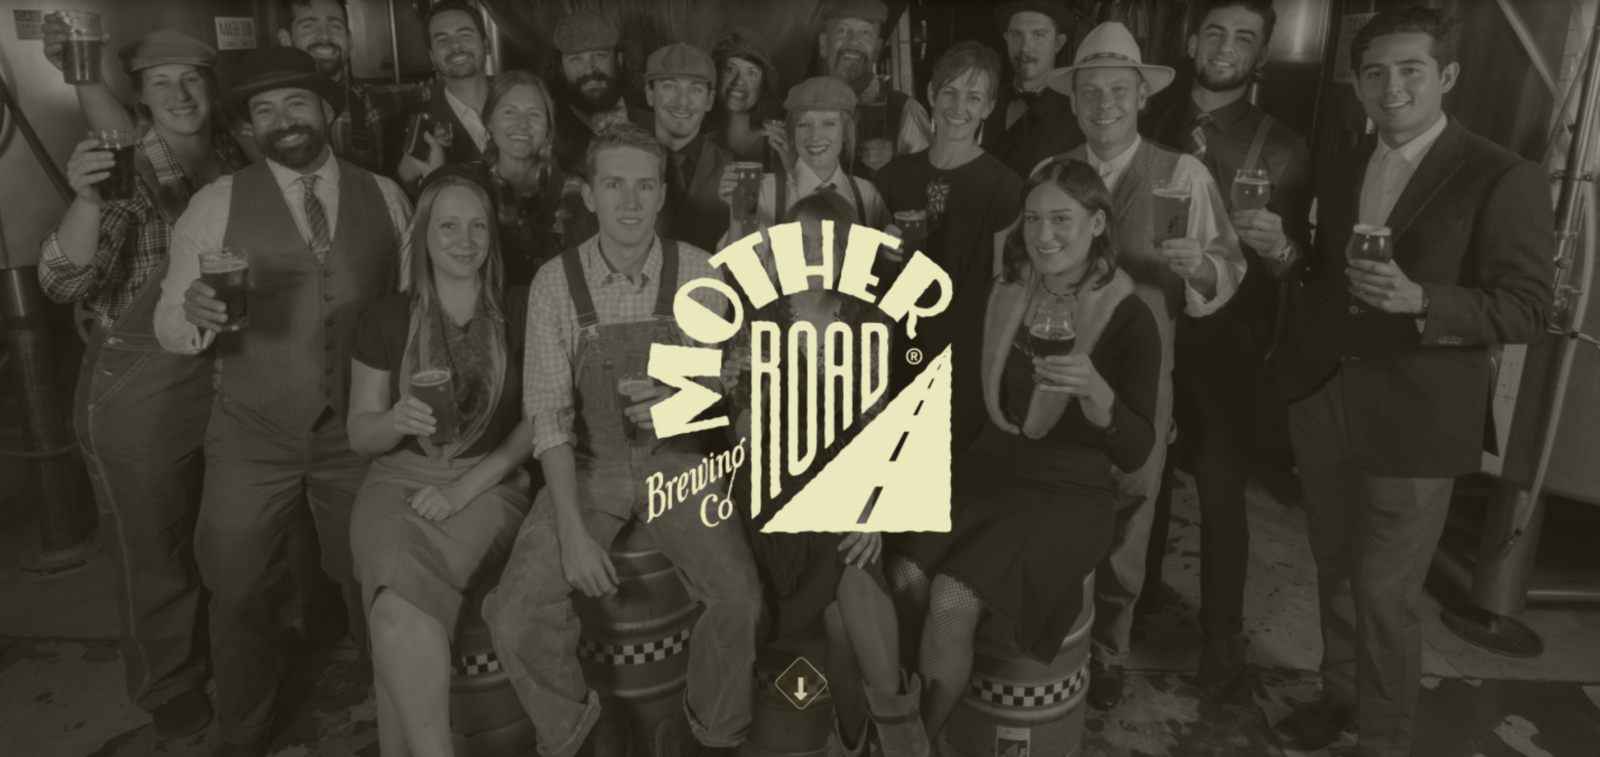 mother road brewery